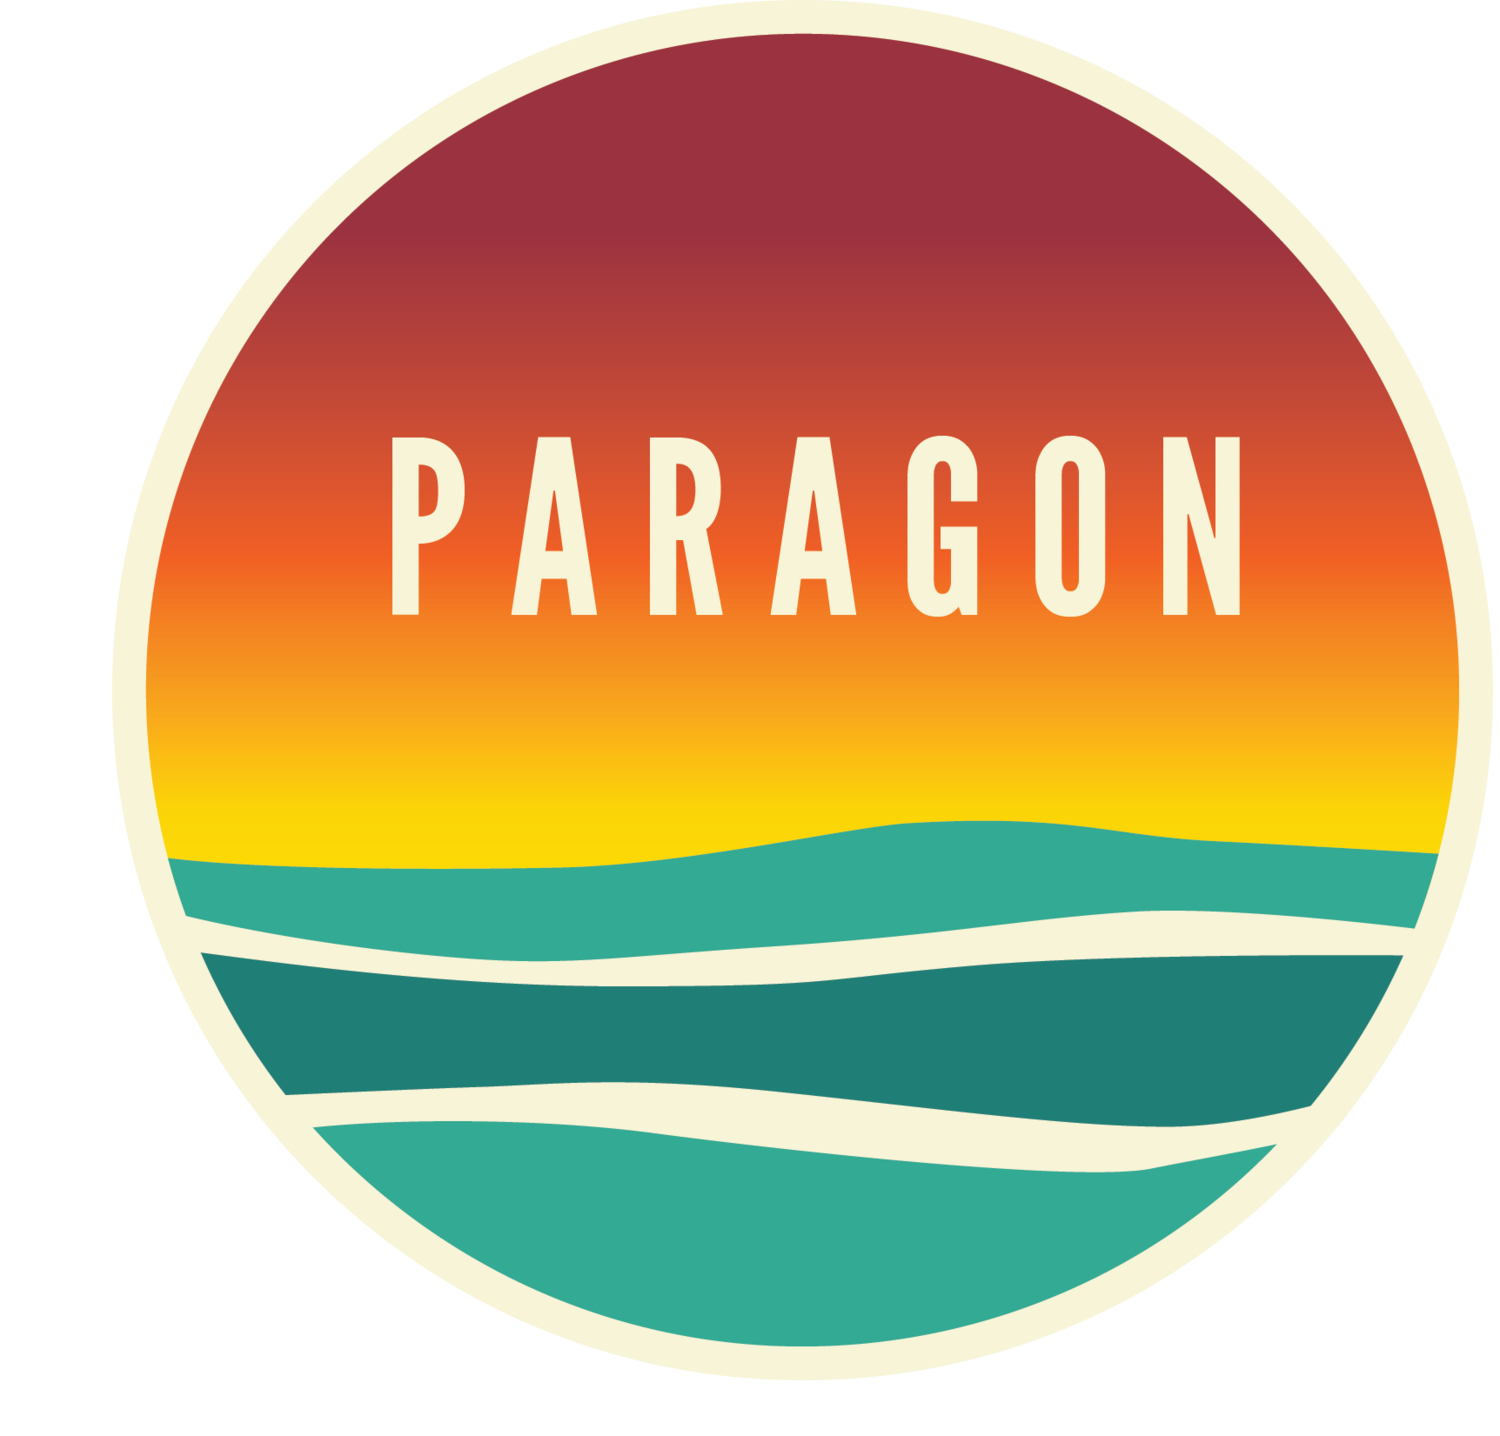 Paragon Boardwalk